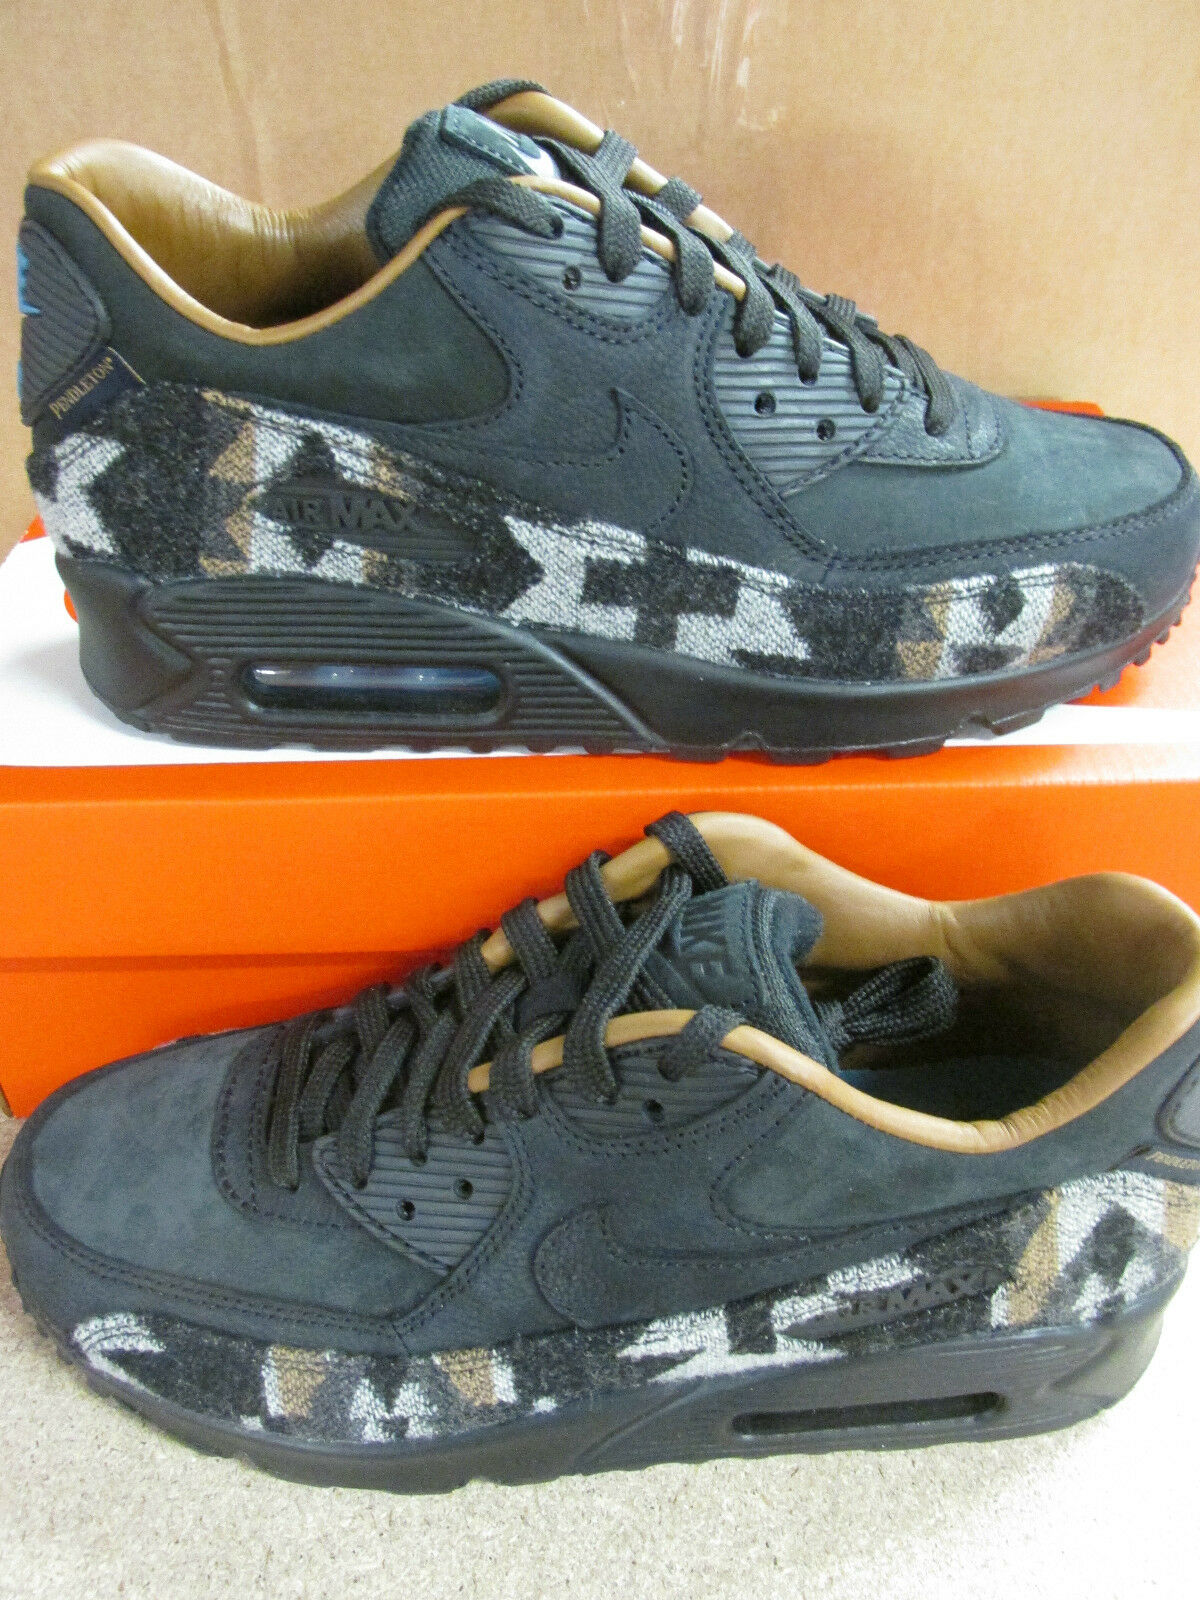 Nike air max 90 PND QS mens running trainers 825512 004 sneakers shoes